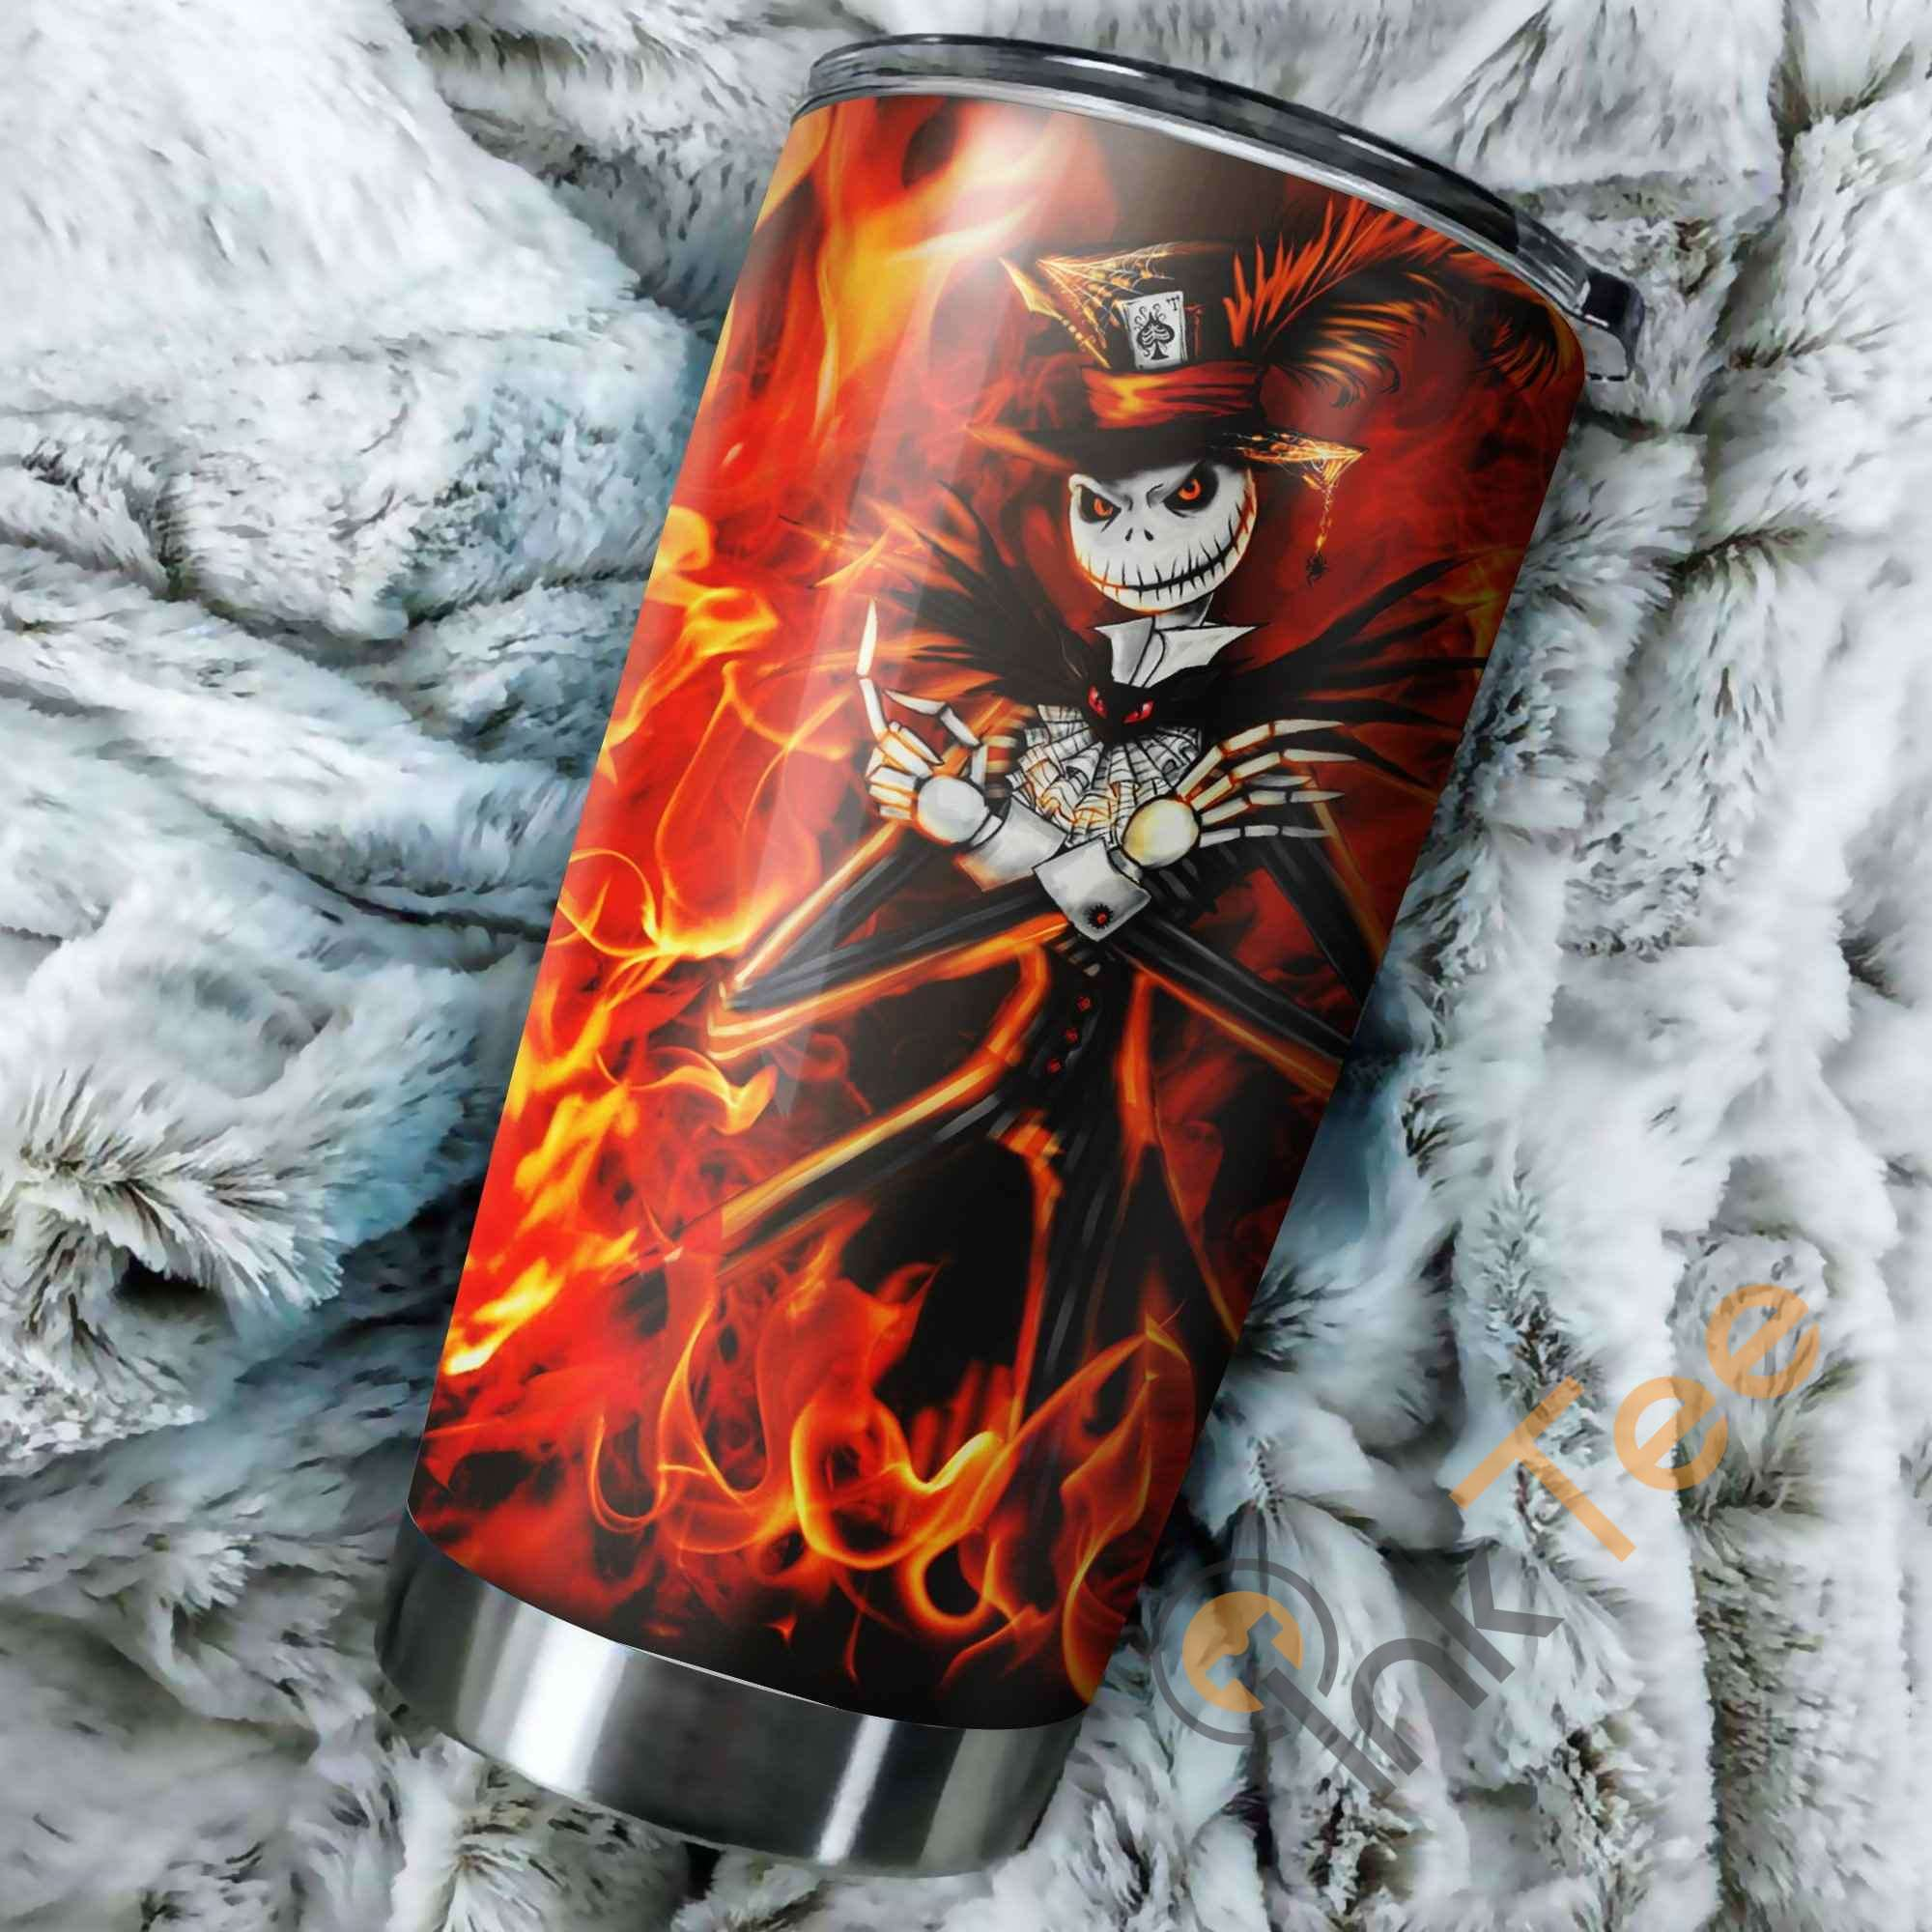 Fire Jack Skellington Nightmare Before Christmas Perfect Gift Stainless Steel Tumbler